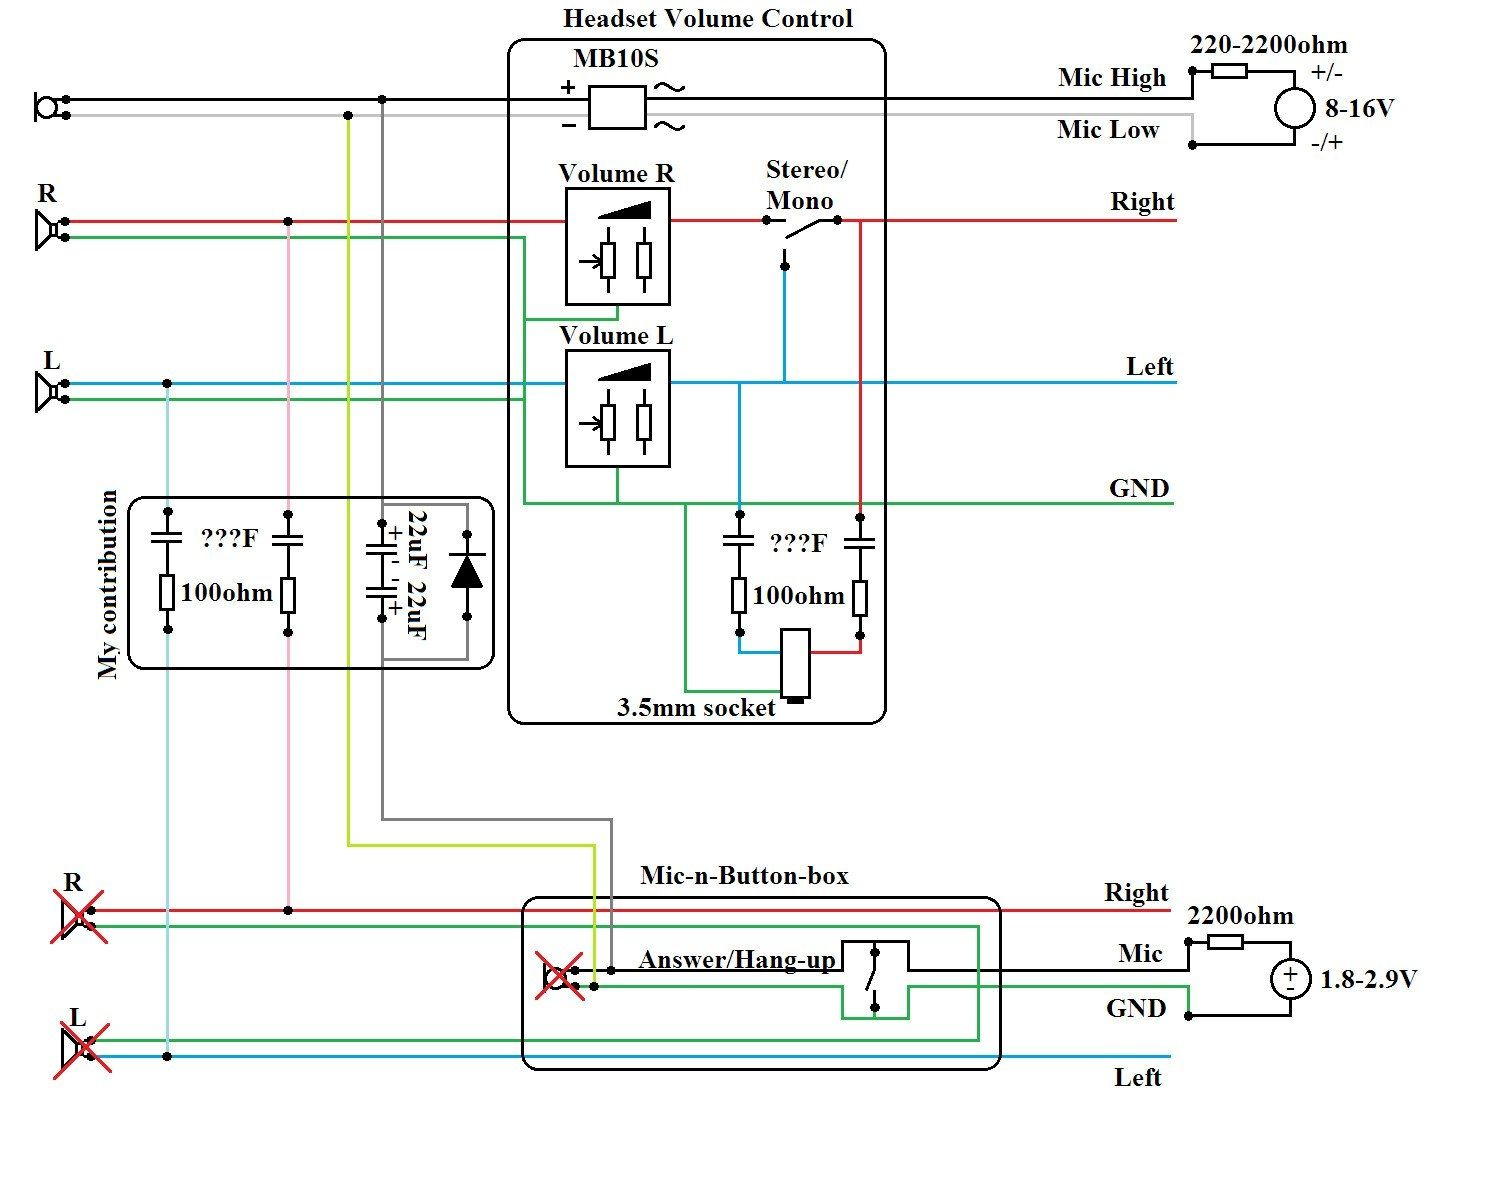 David Clark Wiring Diagram Headphones - Great Installation Of Wiring on high pressure sodium ignitor circuit, high pressure sodium lights on soffit, 150 watt metal halide ballast diagram, 240 volt wiring diagram, how sodium works diagram, high pressure sodium vs led, fluorescent lamp wiring diagram, high pressure sodium lamp fixture, ballast wiring diagram, metal halide light diagram, lamp ignitor diagram, mercury vapor switch diagram, metal halide ballast installation diagram, mh lamp wiring diagram, electronic ballast schematic diagram,